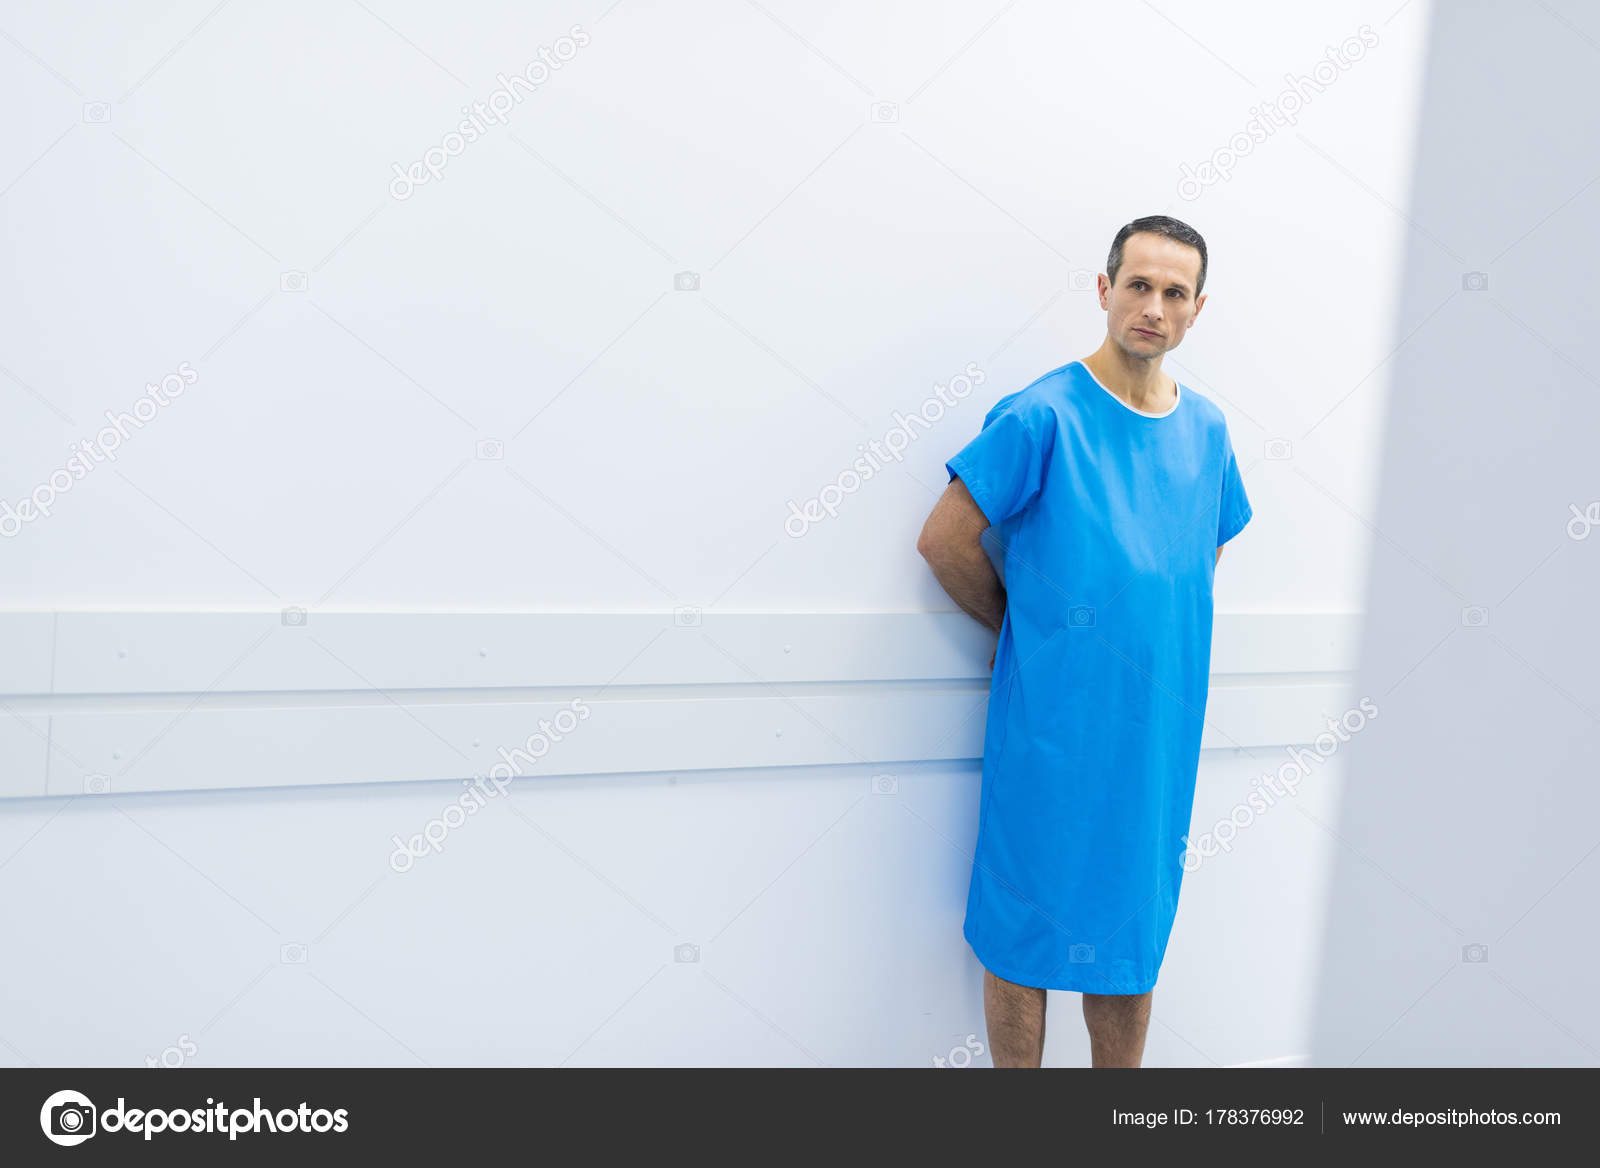 Male Patient Medical Gown Standing Wall Hospital — Stock Photo ...